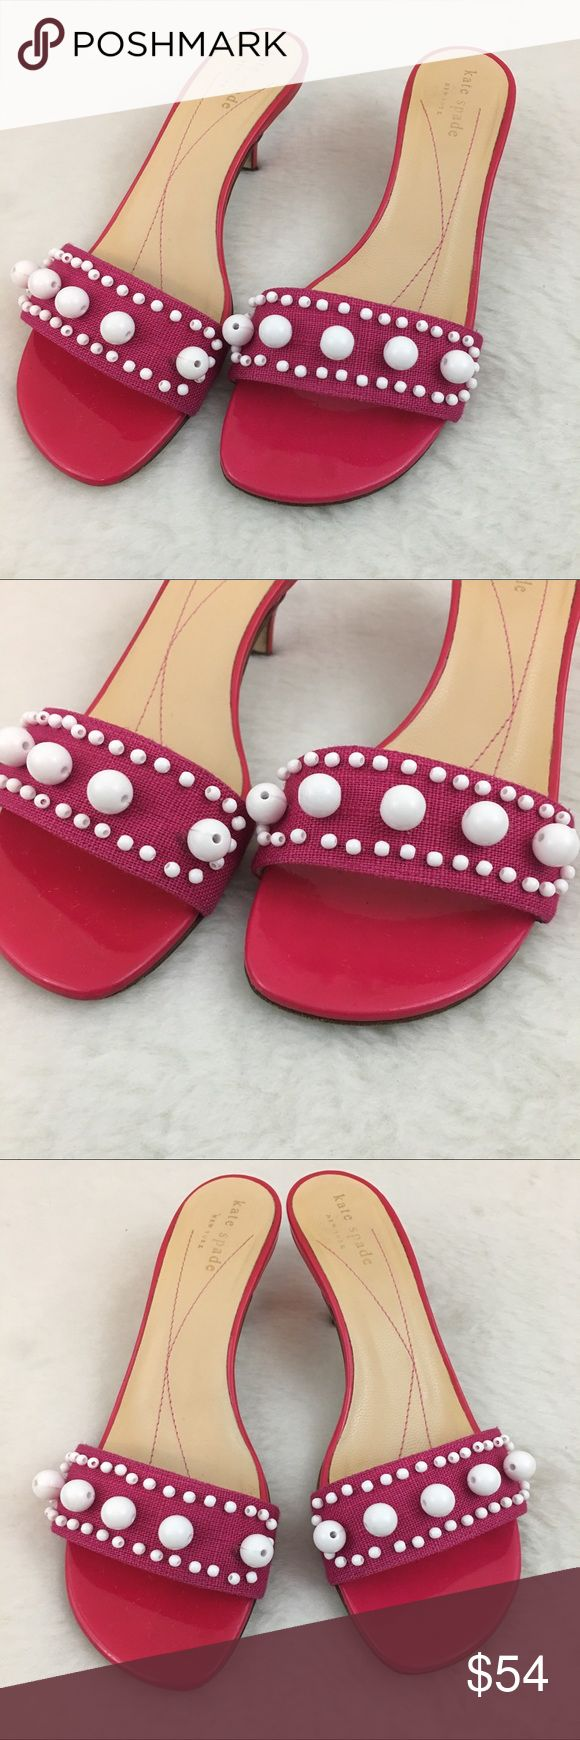 Kate Spade Pink Kitten Heel Sandals Size 6.5 Great condition.  Pet and smoke free environment. kate spade Shoes Heels